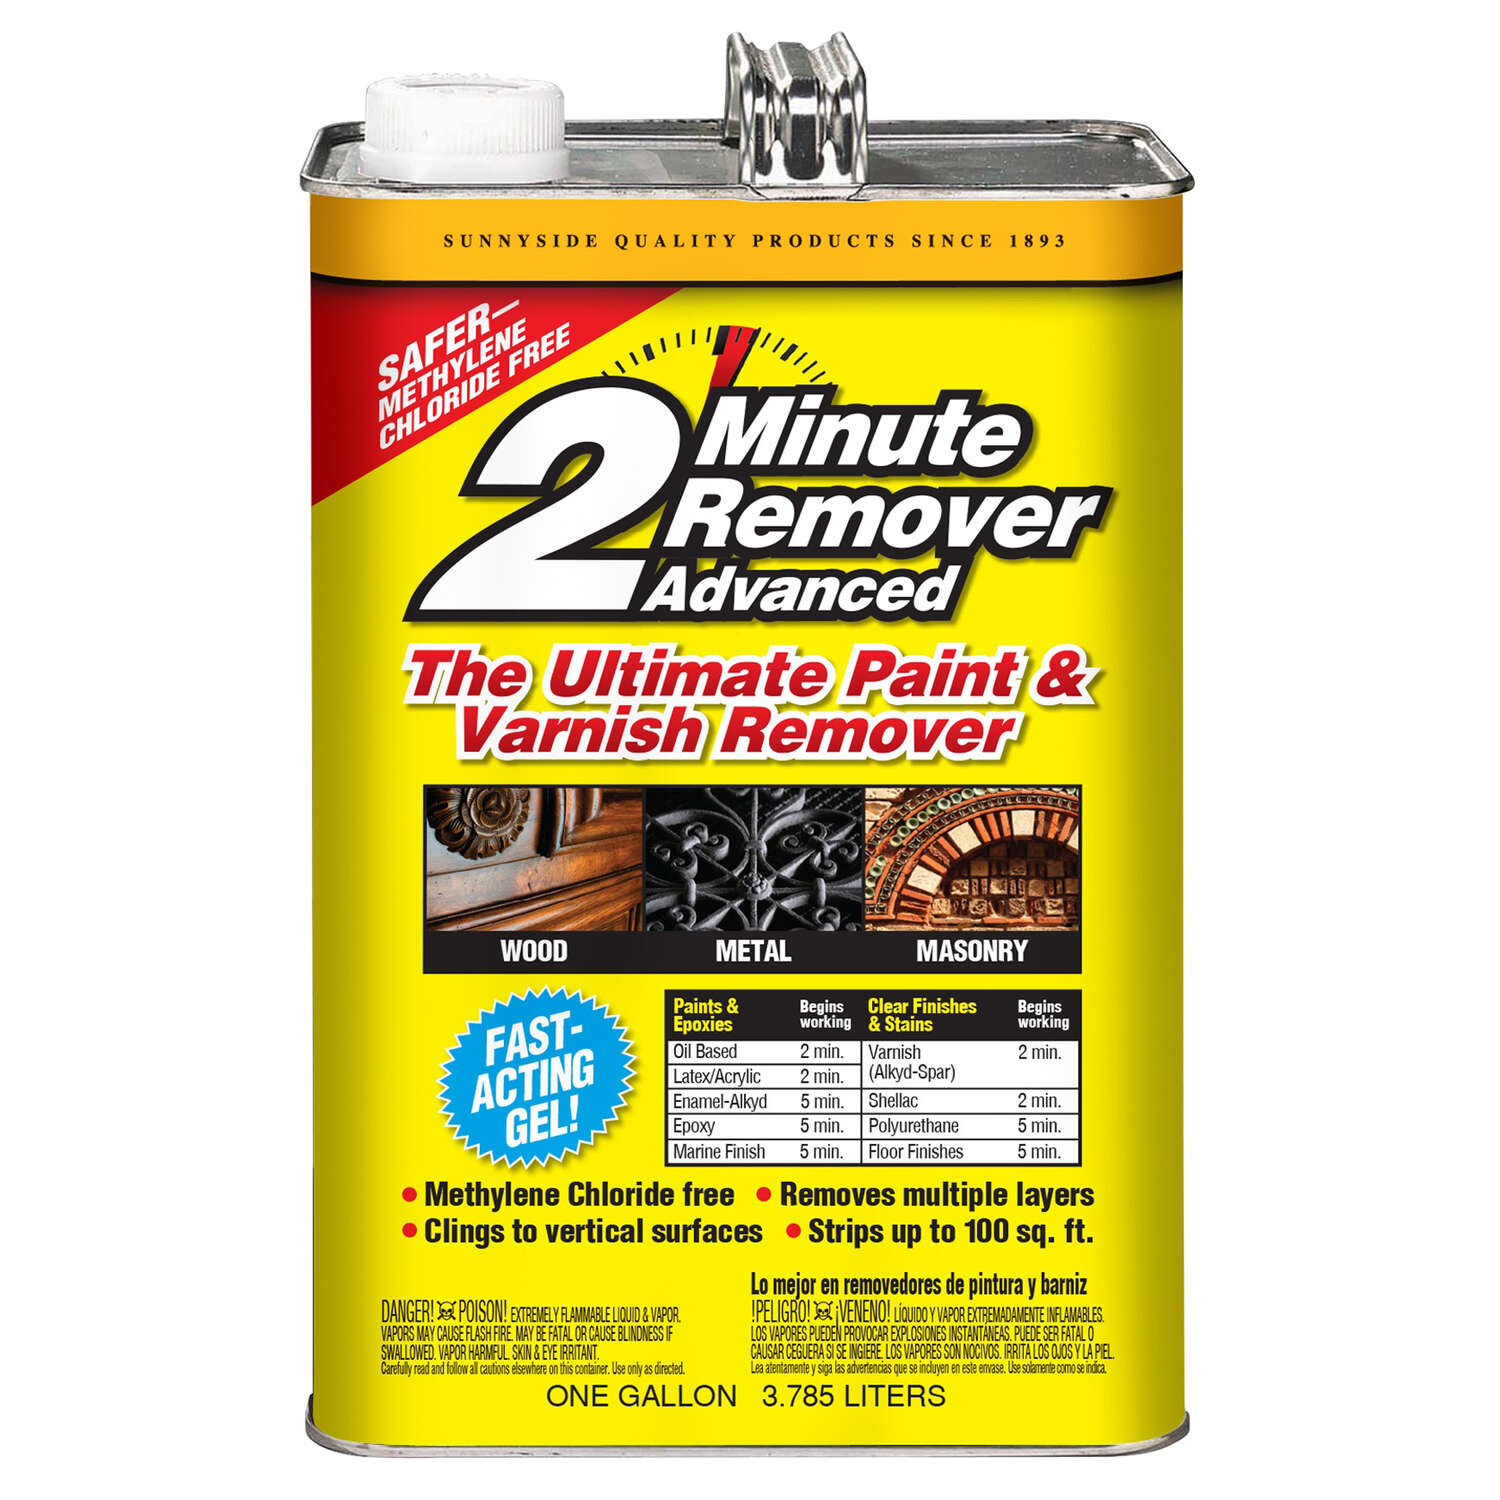 Sunnyside  2 Minute Remover Advanced  Paint and Varnish Remover  1 gal.